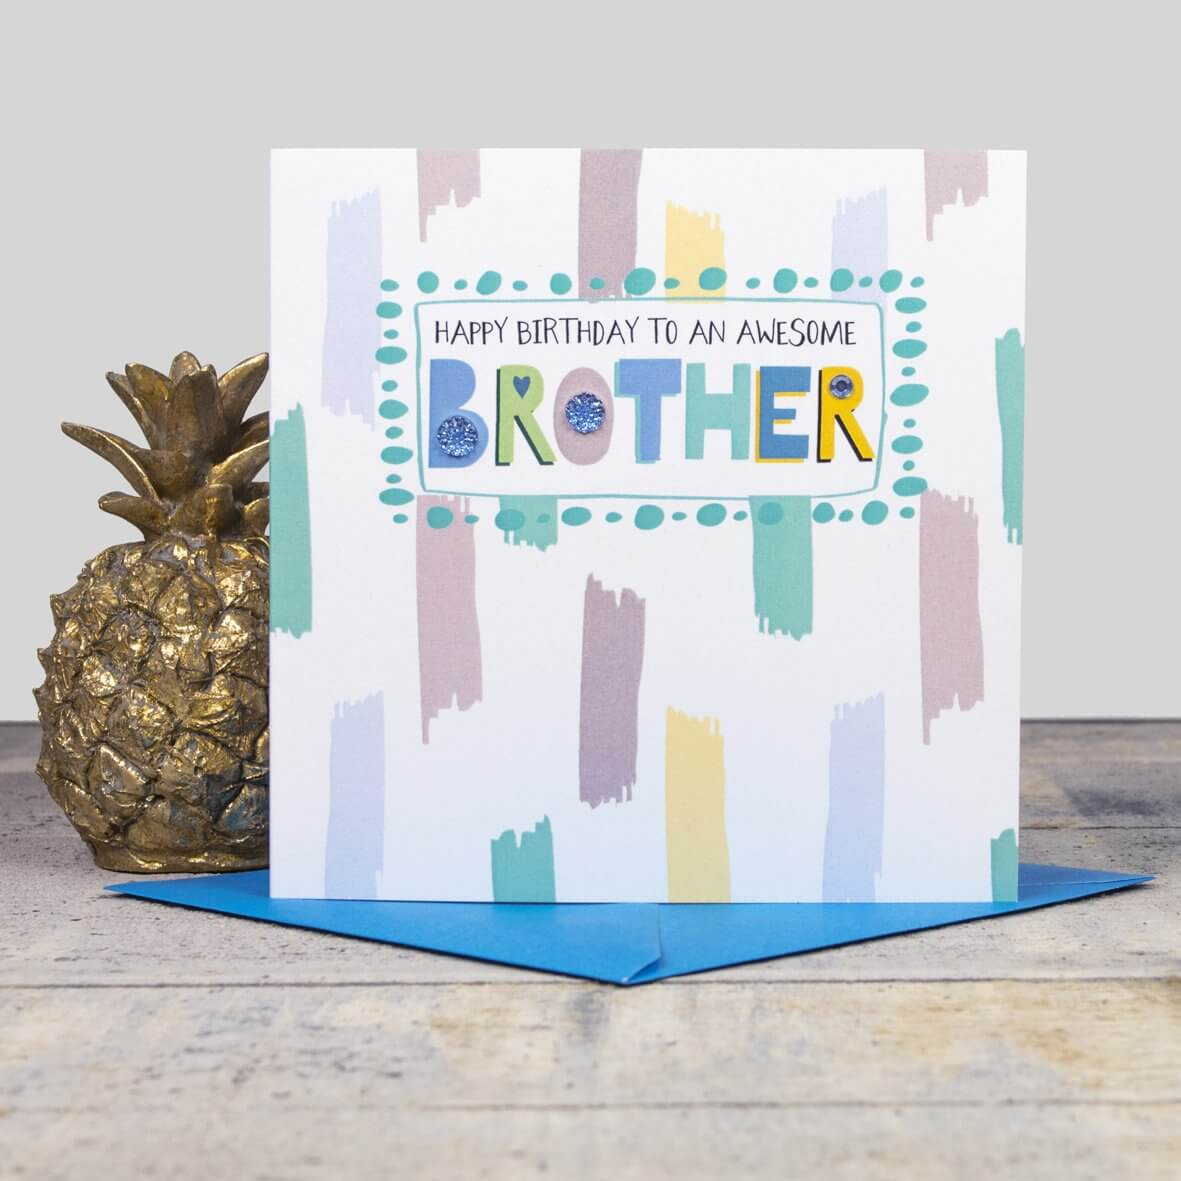 Awesome Brother - Happy Birthday Card